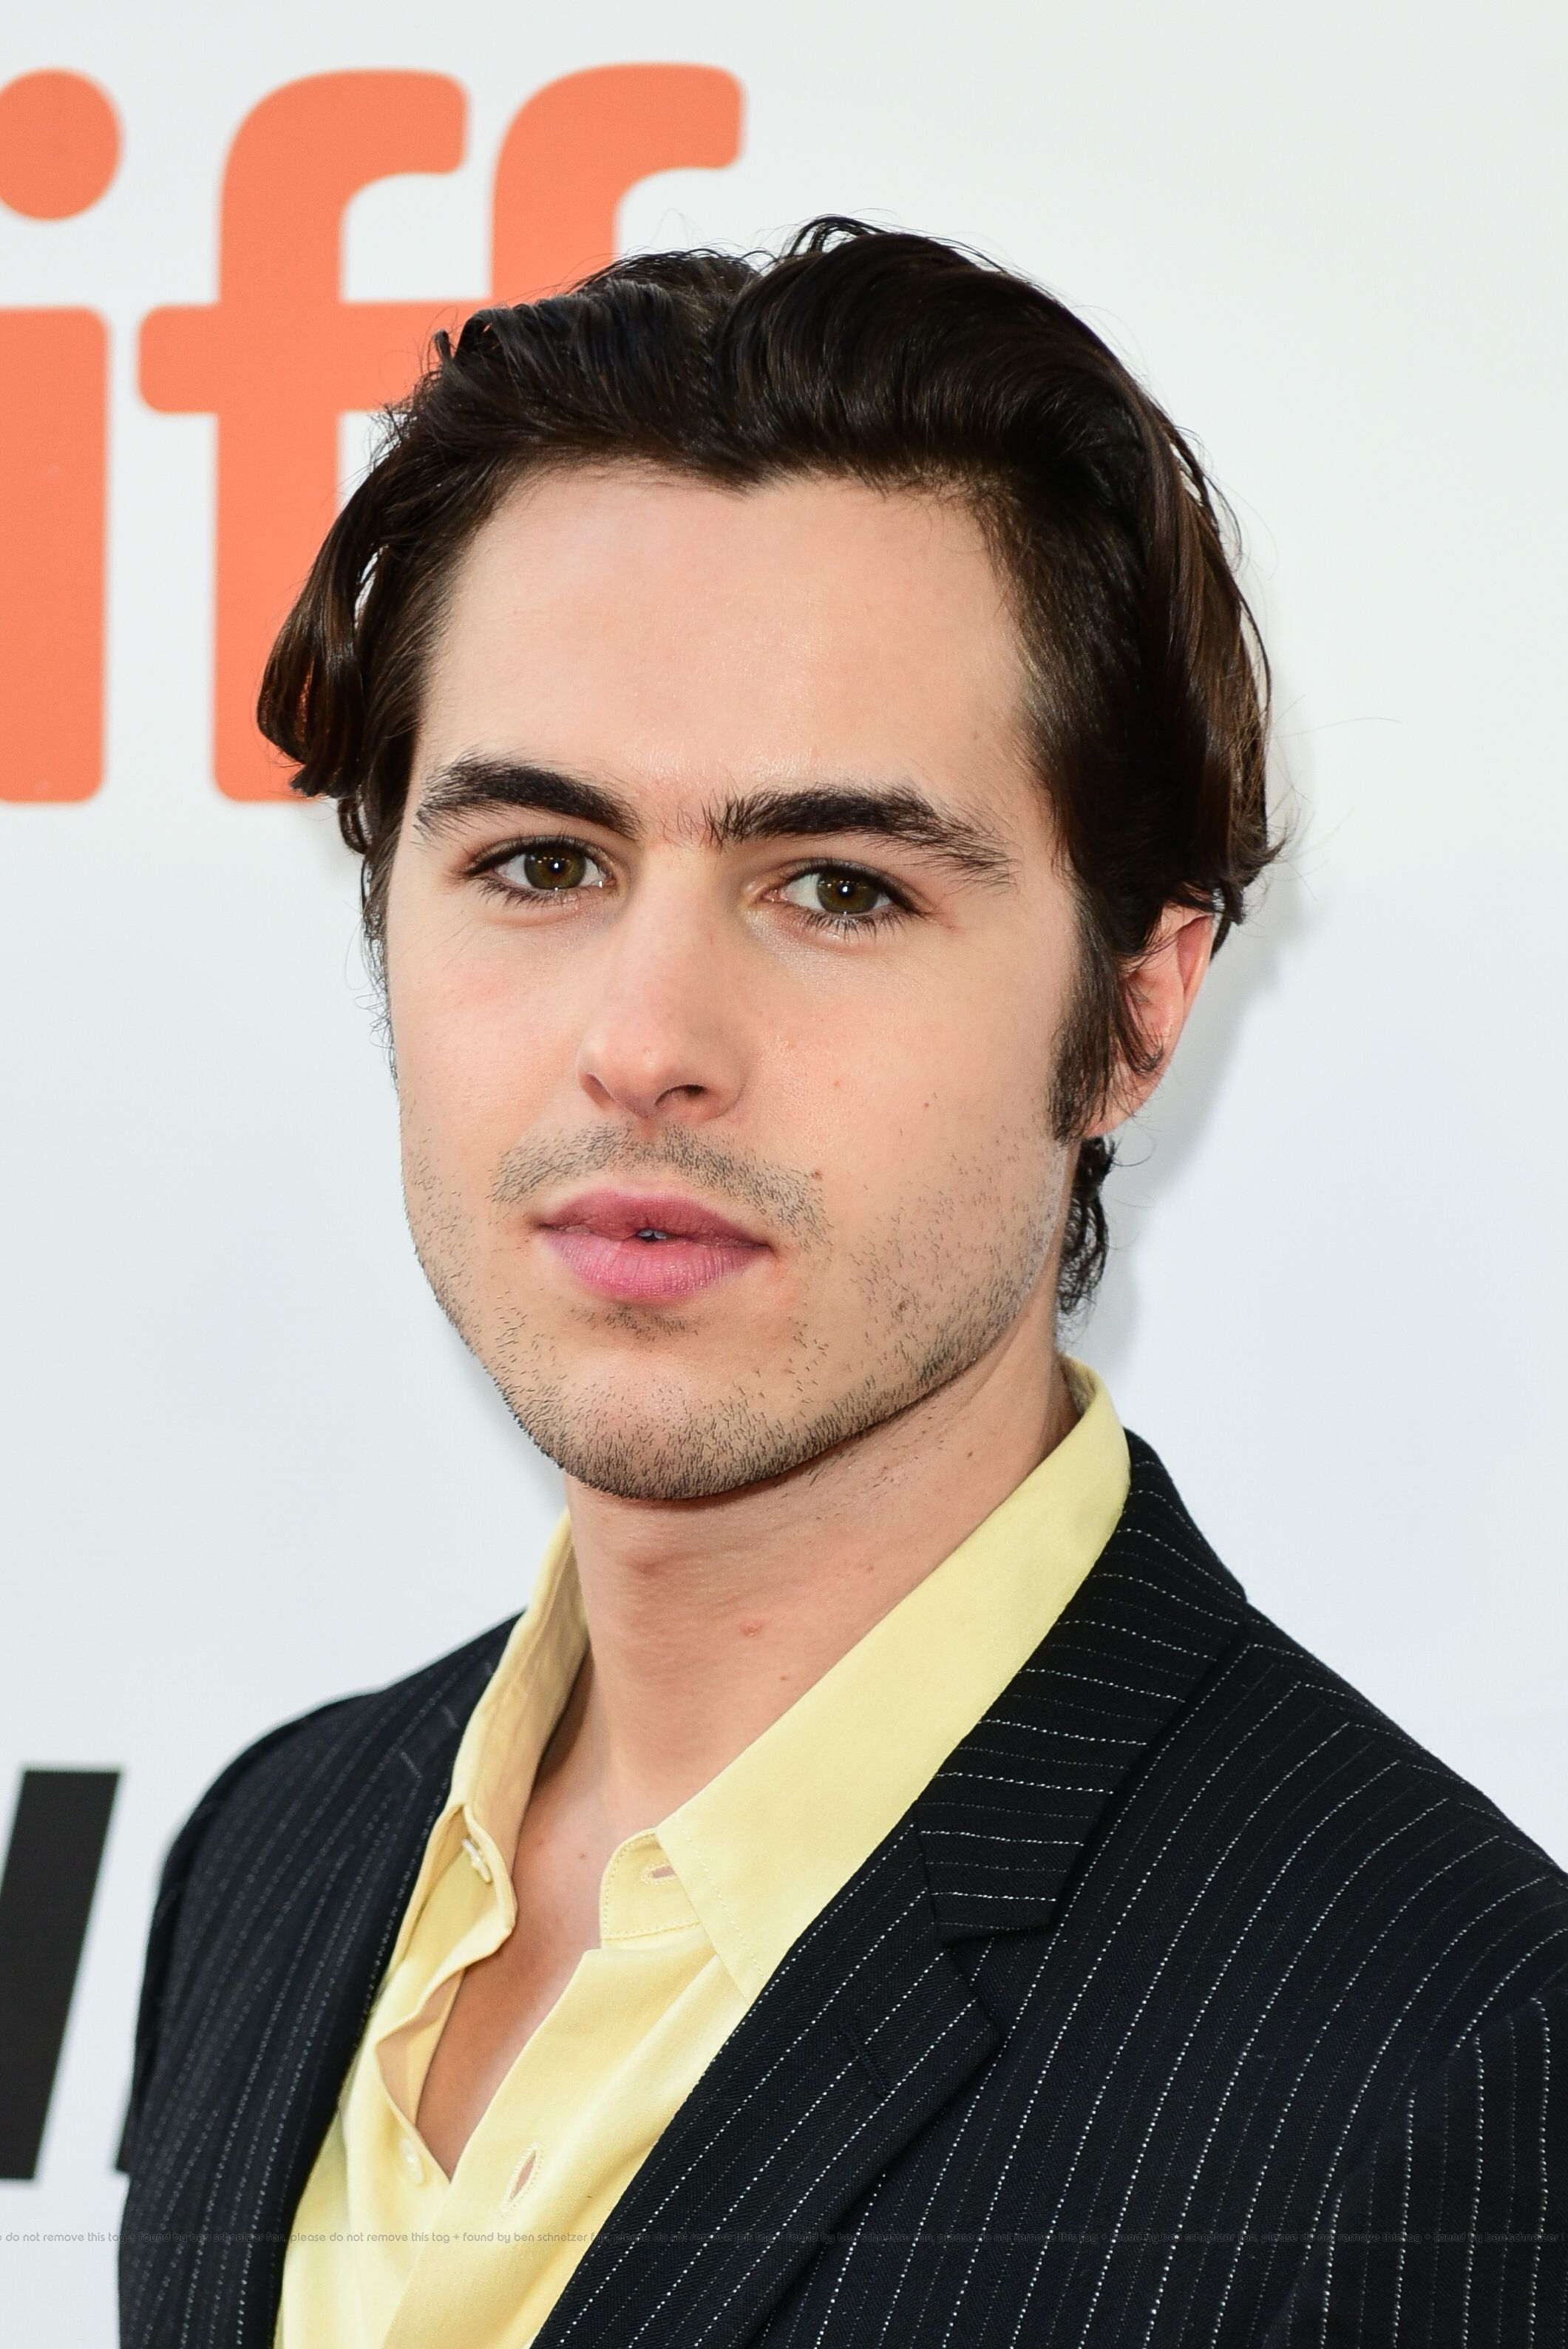 ben schnetzer private lifeben schnetzer gif, ben schnetzer tumblr, ben schnetzer british accent, ben schnetzer insta, ben schnetzer 2015, ben schnetzer facebook, ben schnetzer instagram, ben schnetzer private life, ben schnetzer gay or straight, ben schnetzer interview, ben schnetzer twitter, ben schnetzer the riot club, ben schnetzer who dated who, ben schnetzer email